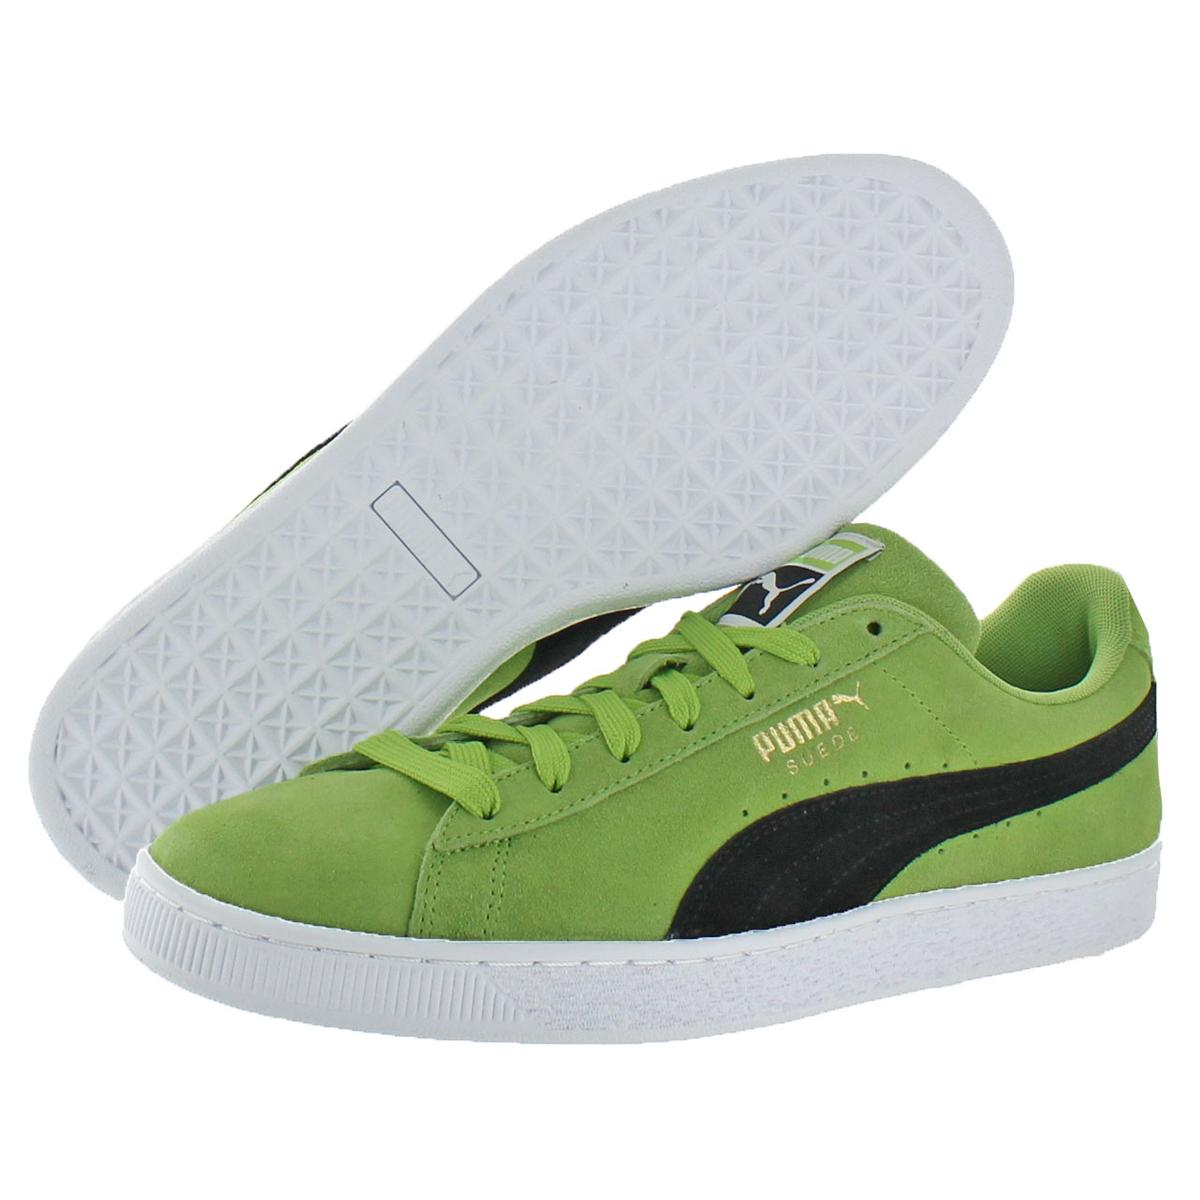 Puma-Suede-Classic-Men-039-s-Fashion-Sneakers-Shoes thumbnail 19